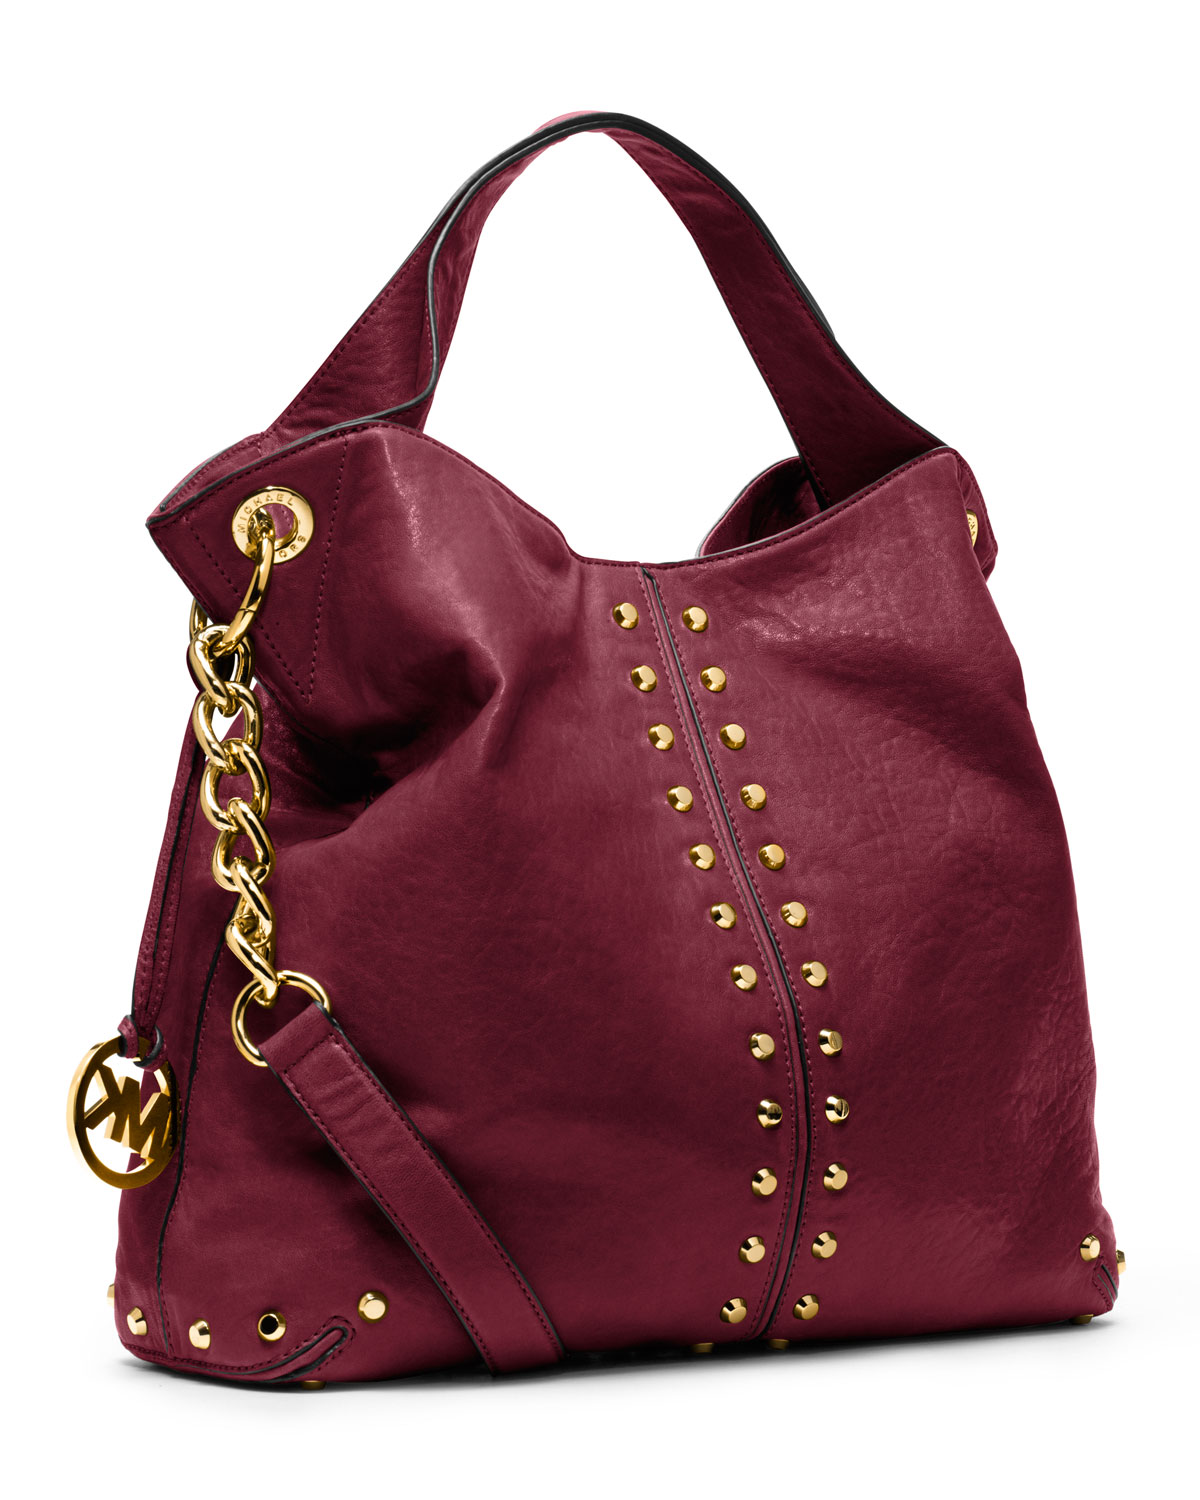 53a0e67a9ce1 Lyst - MICHAEL Michael Kors Large Uptown Astor Shoulder Bag in Red